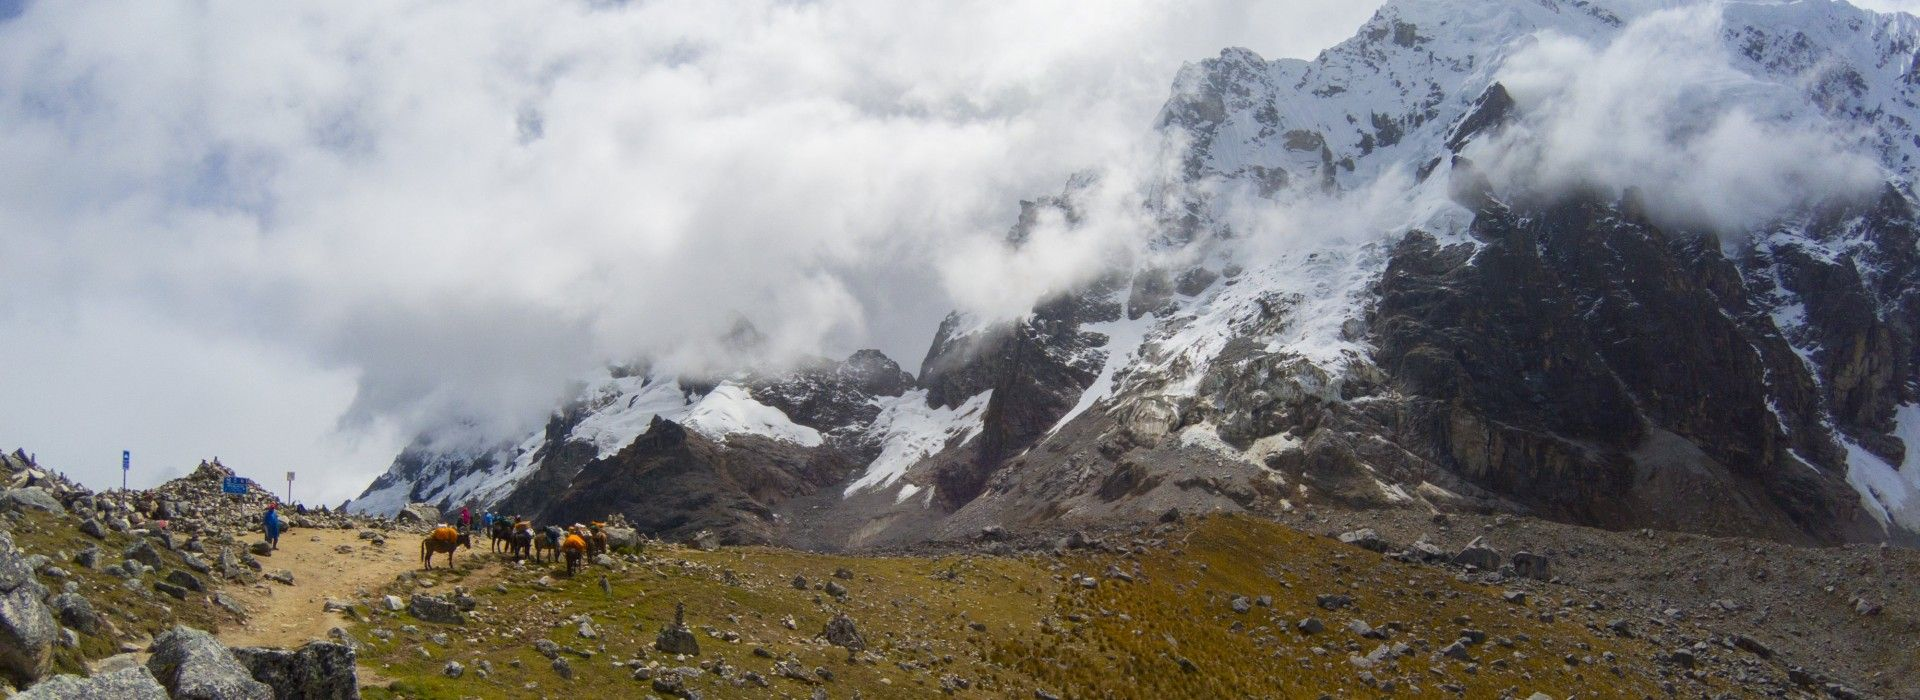 Sightseeing, attractions, culture and history Tours in Salkantay